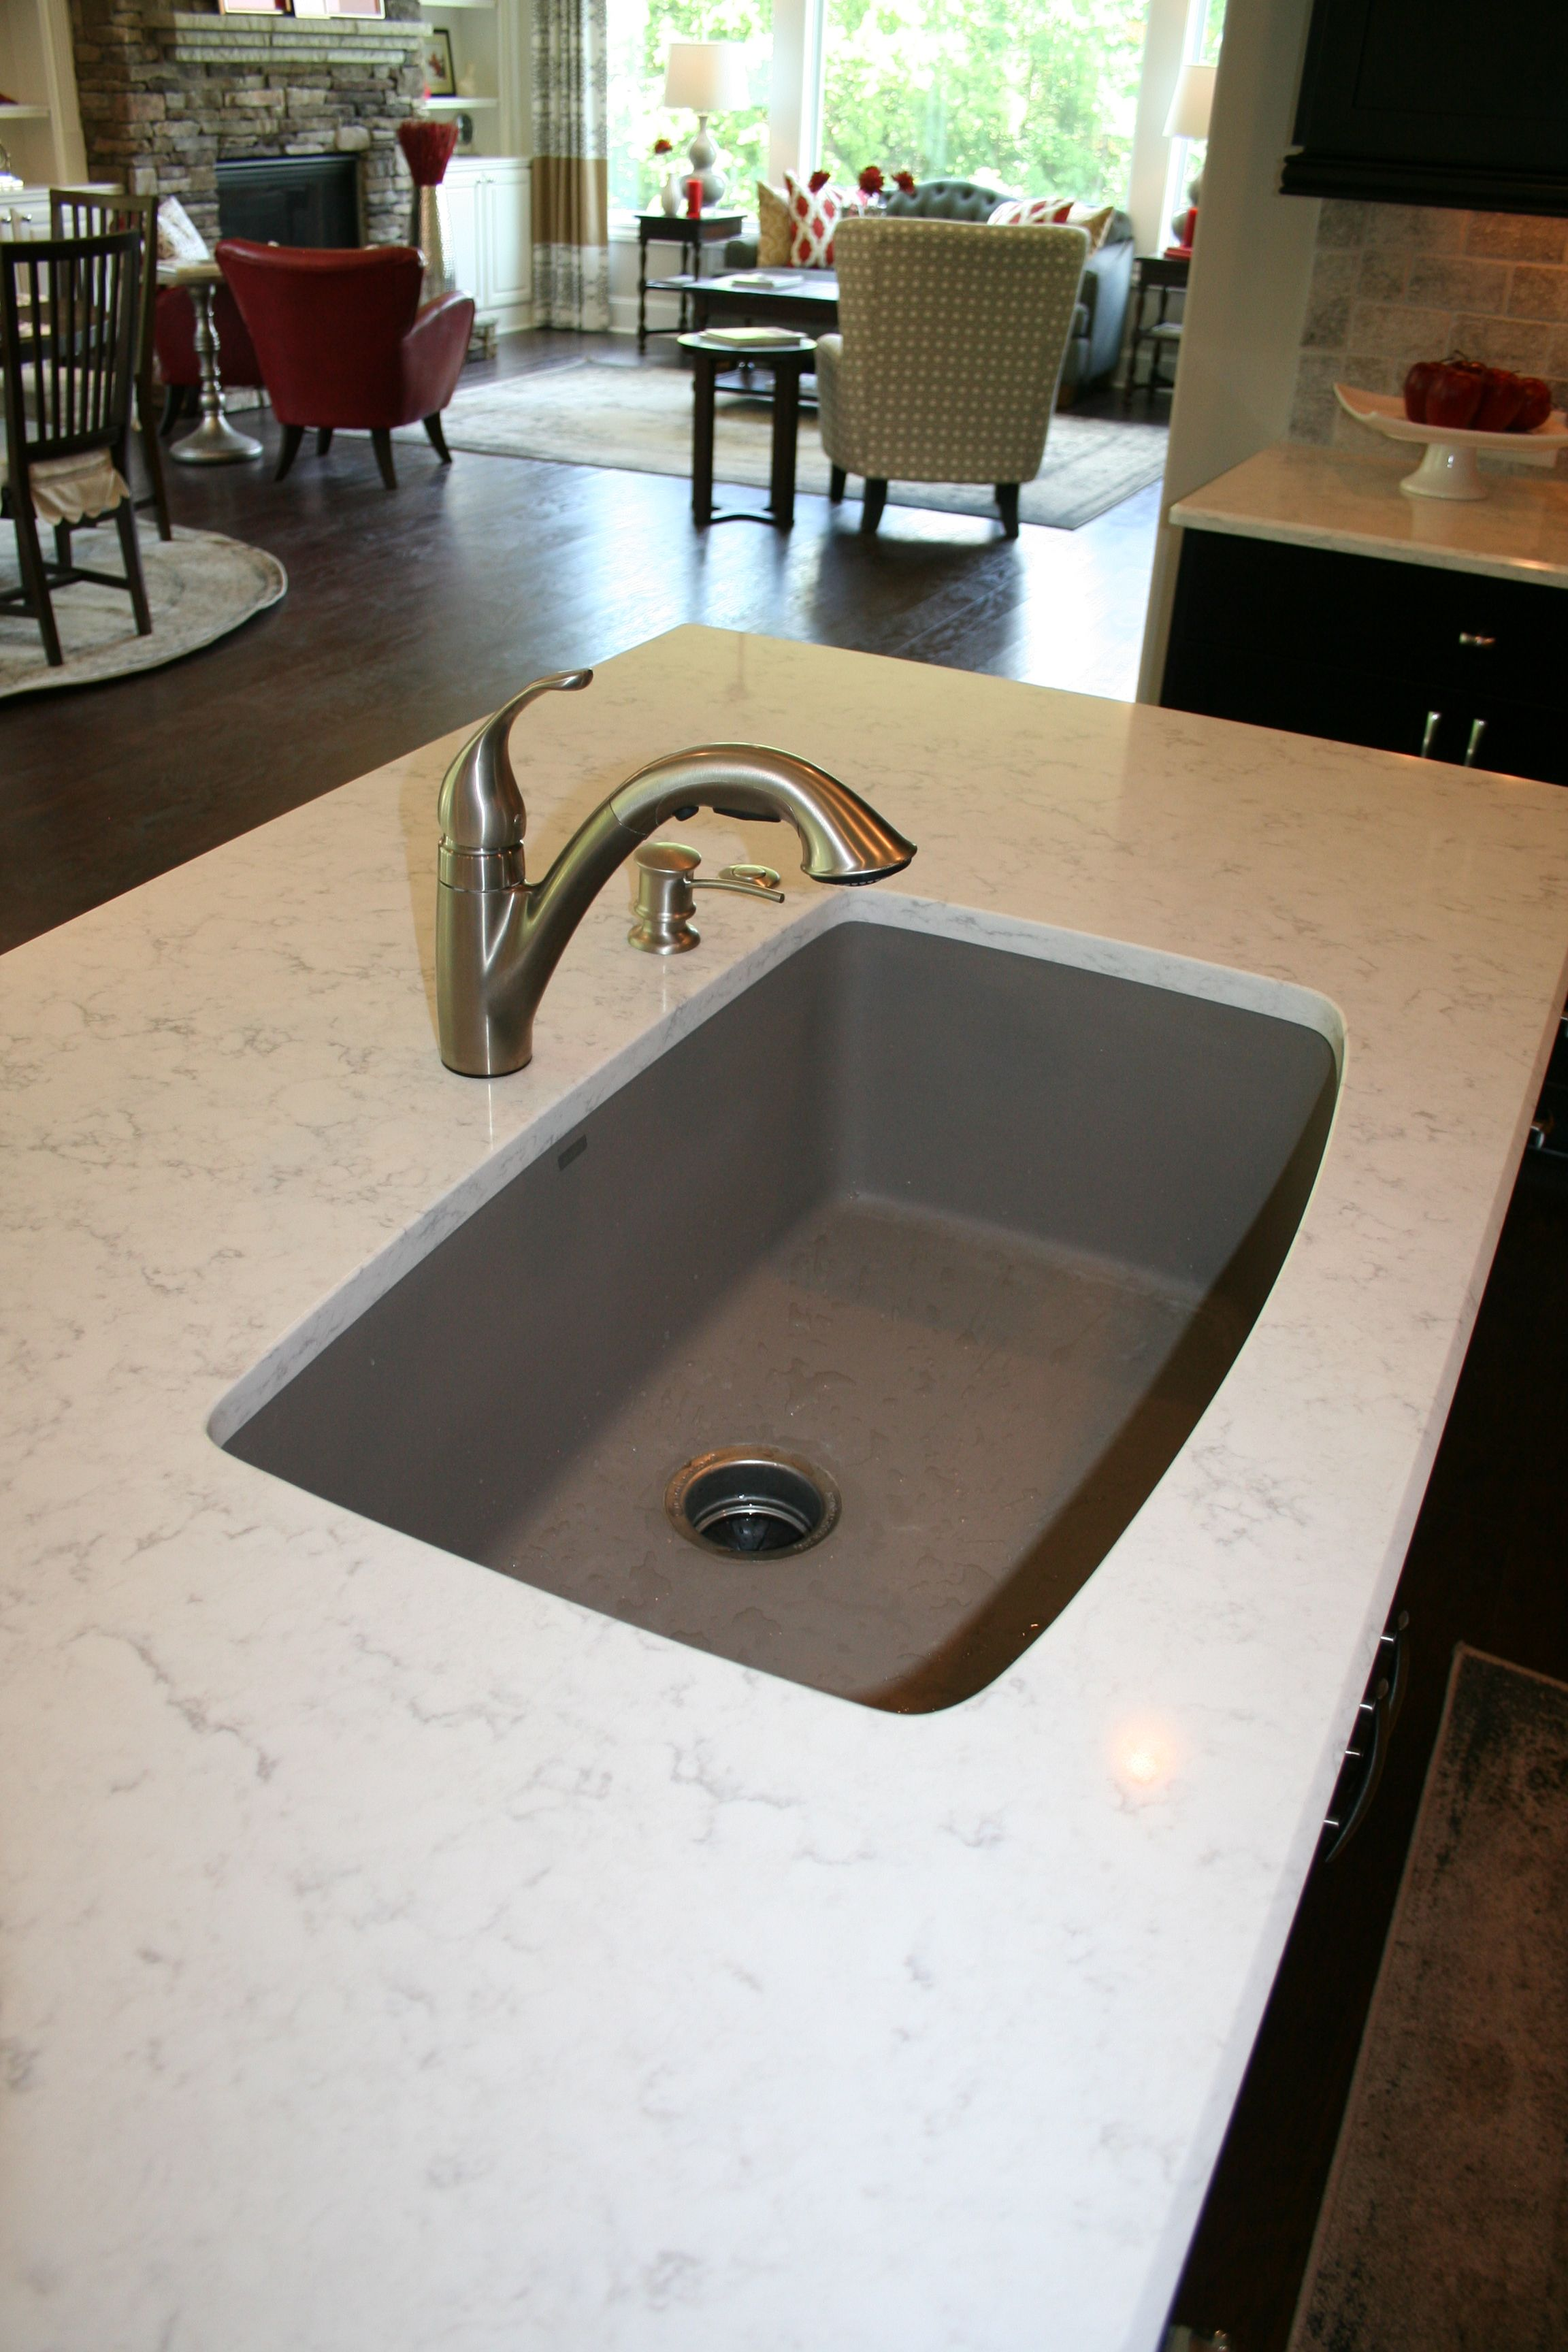 Quartz Countertop With Single Bowl